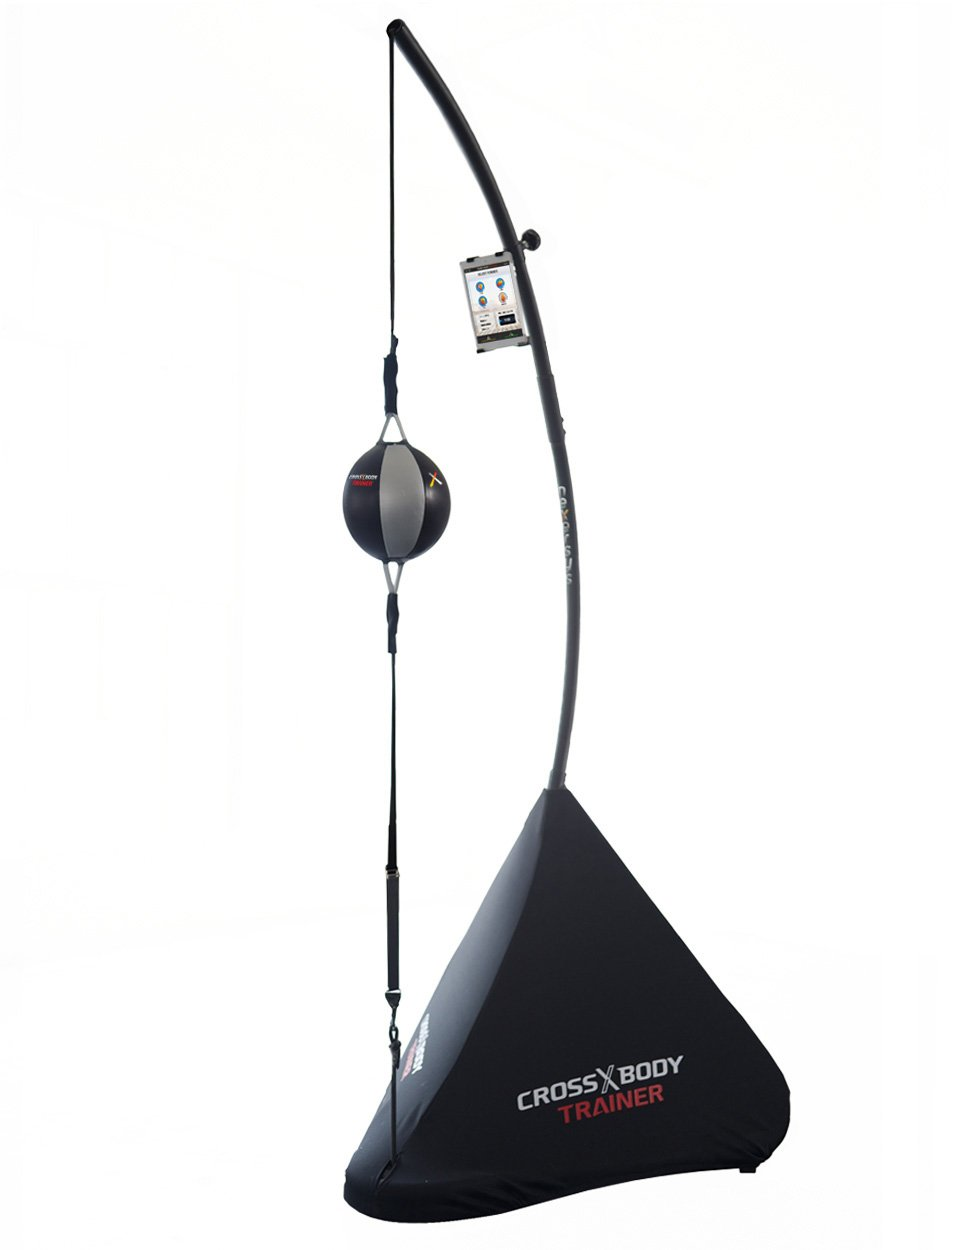 Nexersys Cross Body Trainer with Interactive Double End Bag for Boxing & MMA, Large, Matte Black